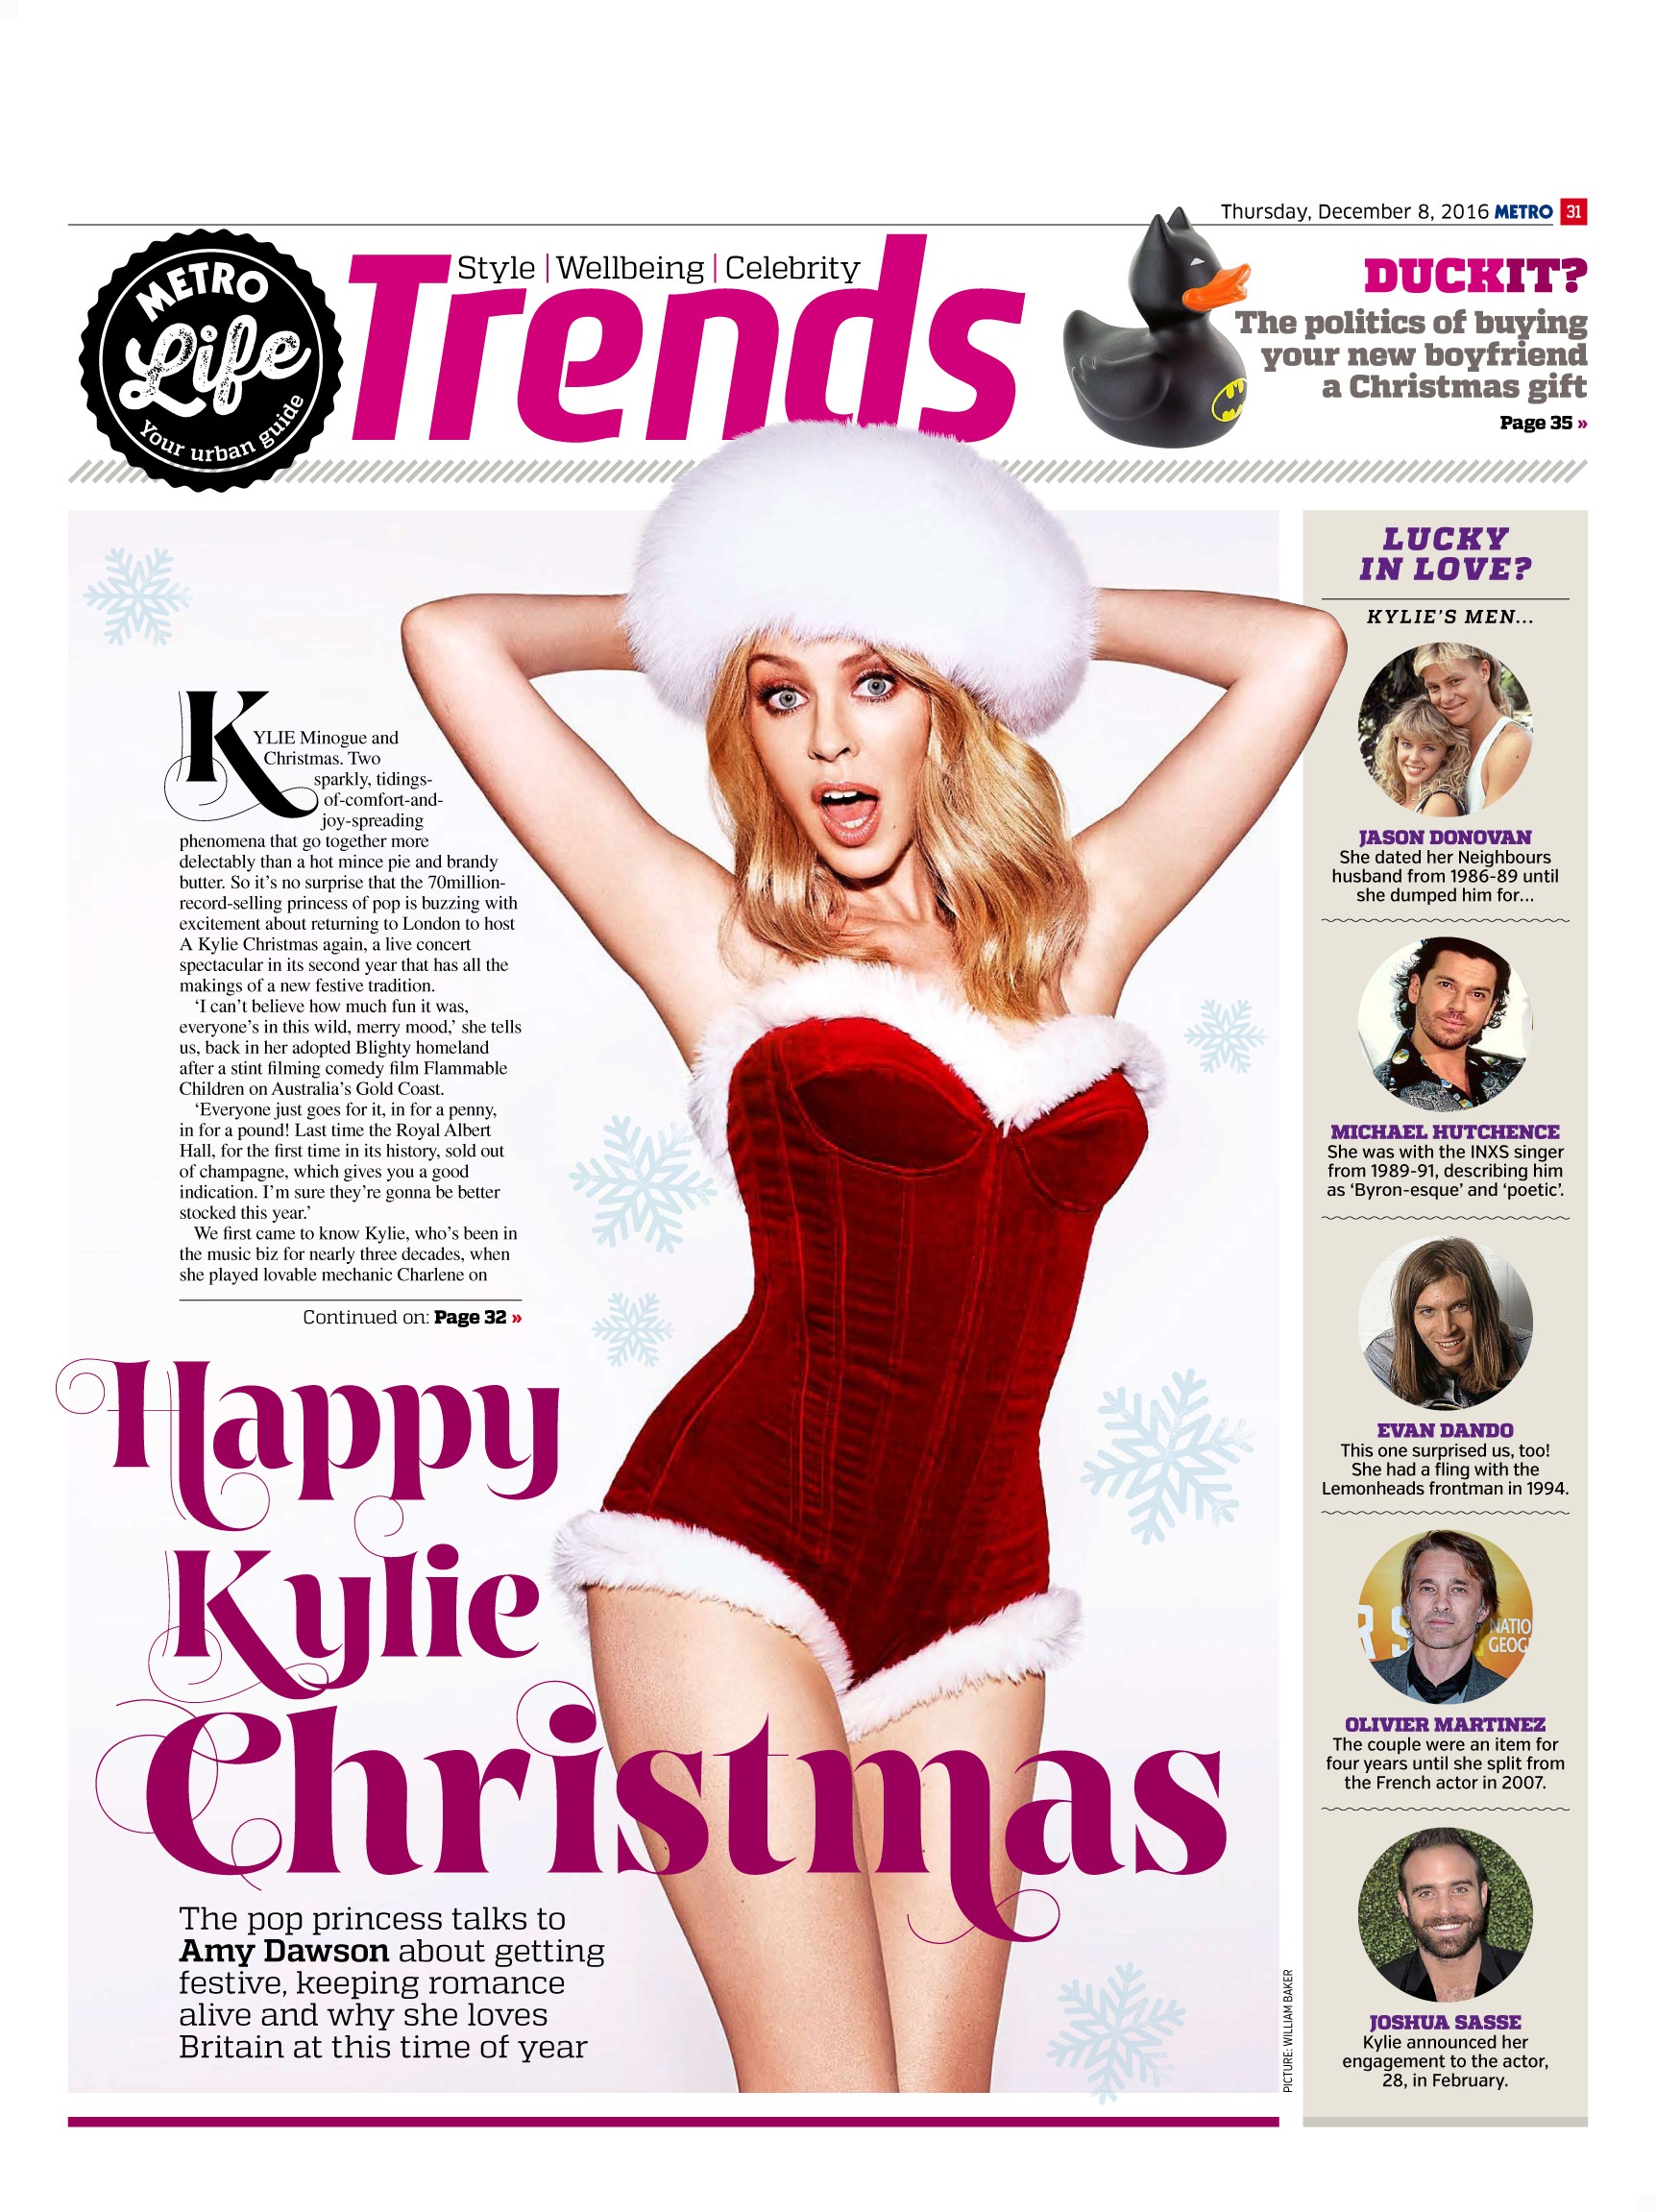 Especially For Yule: A Christmas Interview with Kylie Minogue (Metro, 8th Dec 2016)